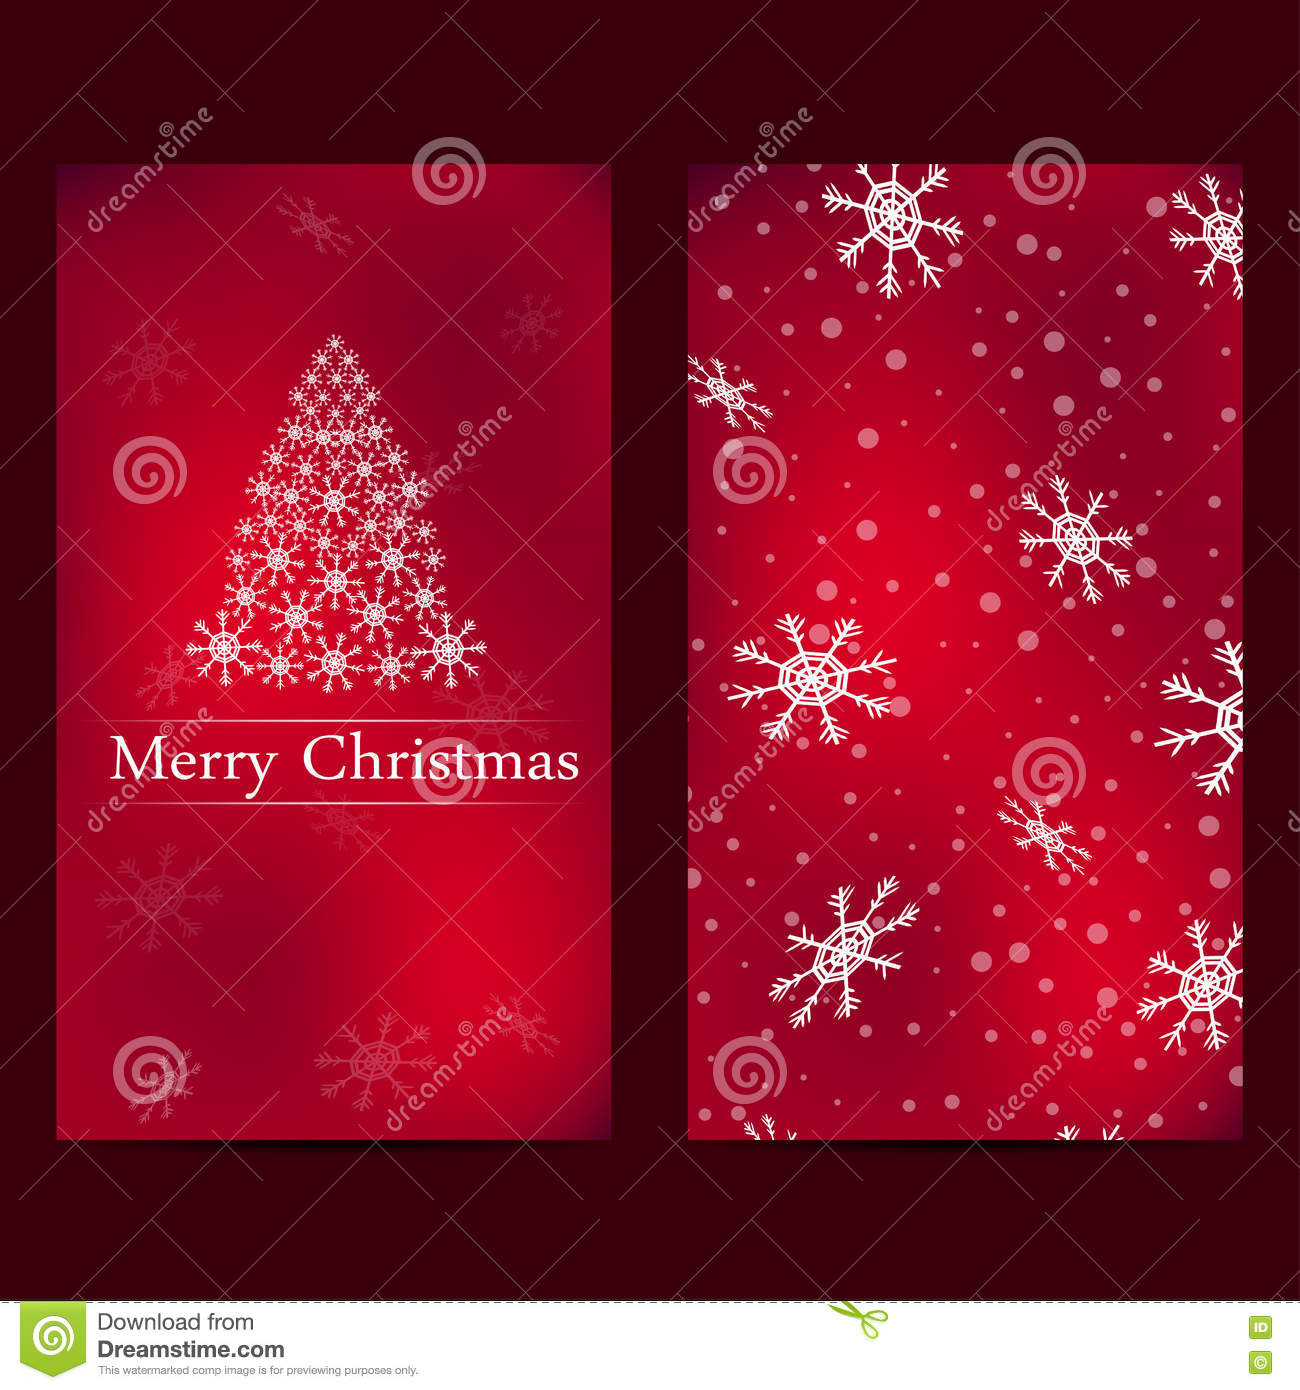 Christmas and New Years card with red background